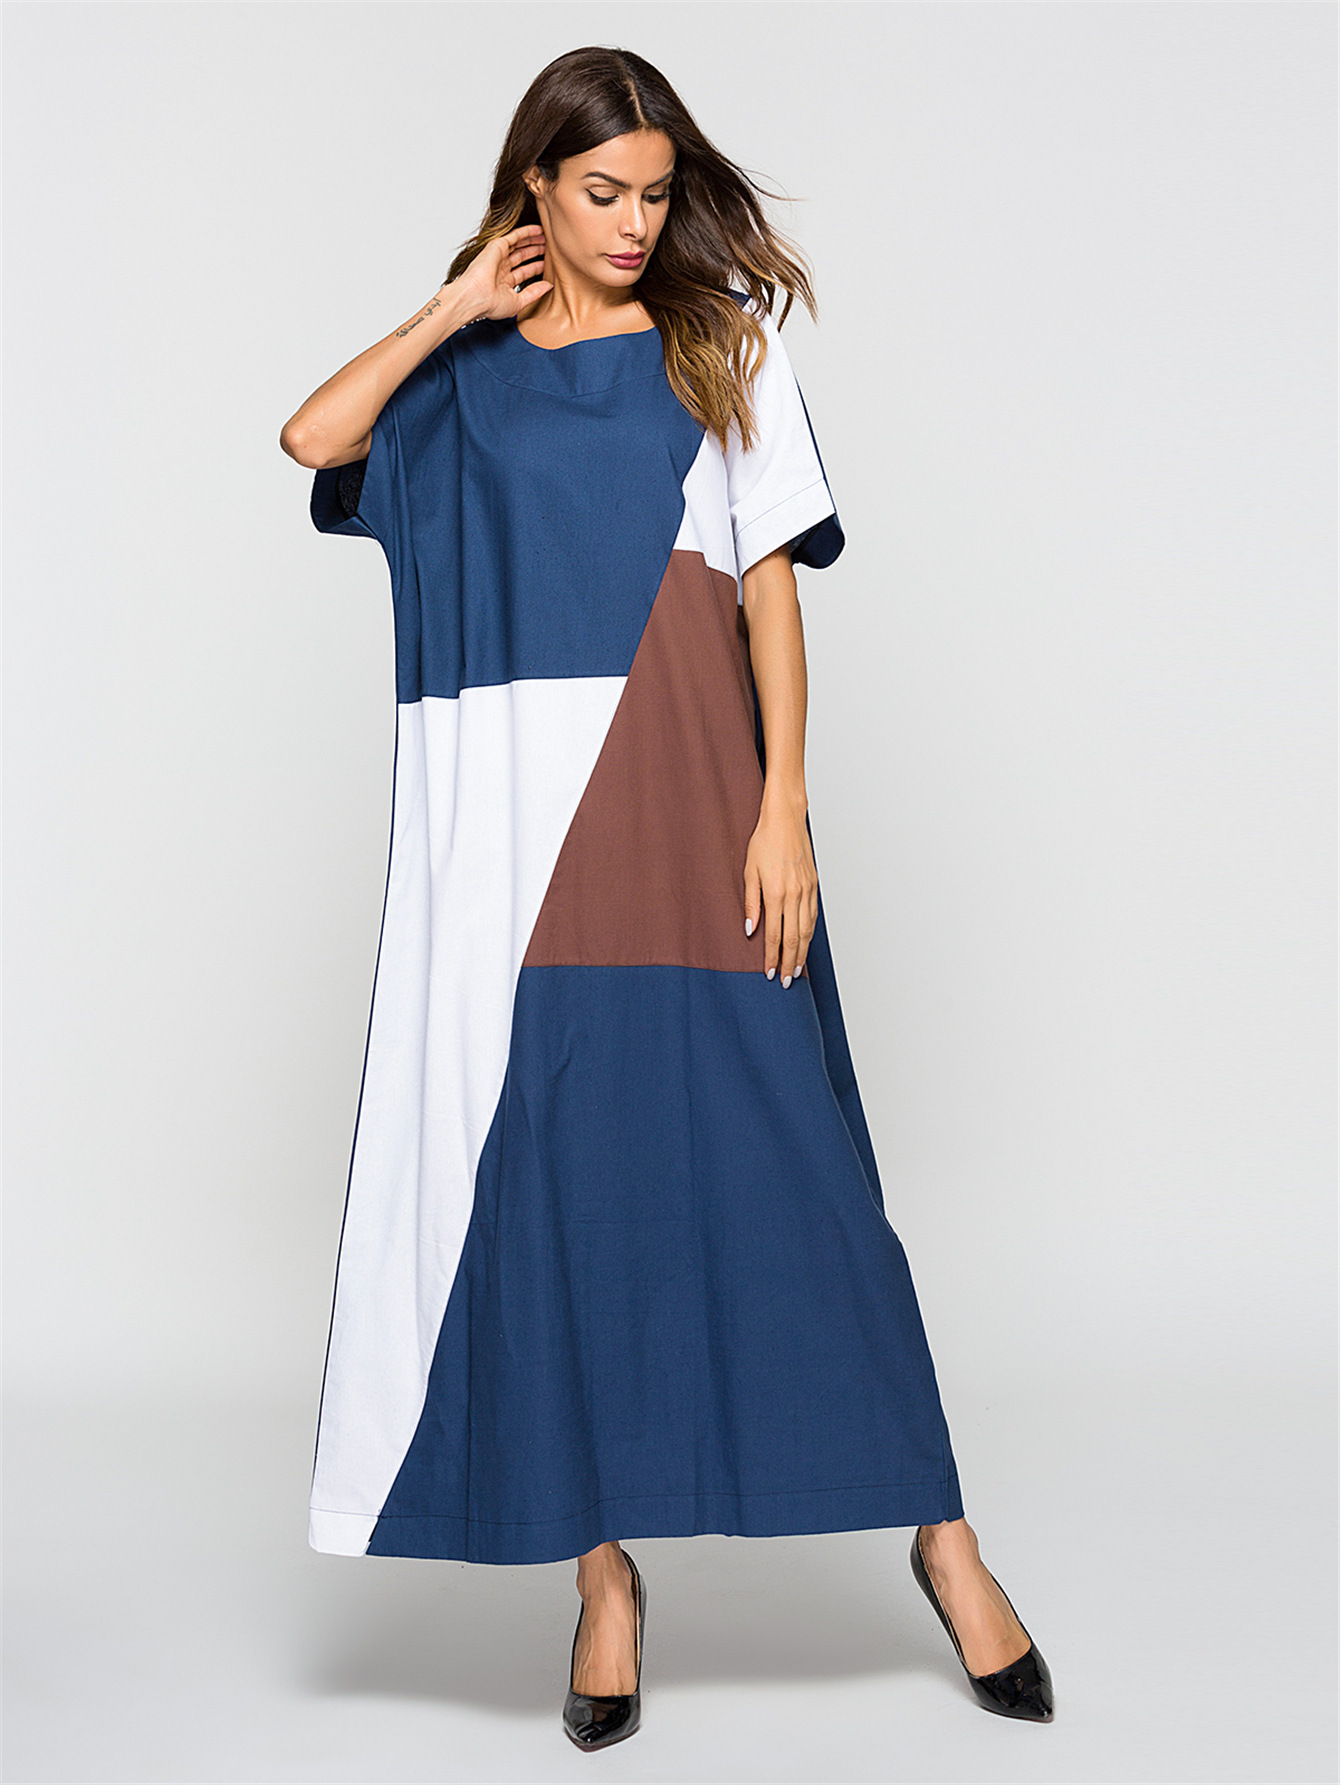 Women New Short Sleeve Stithing Kaftan Muslim Arab Middle East Robe Abaya Dubai Ramadan Moroccan Islamic Prayer Clothing Dress